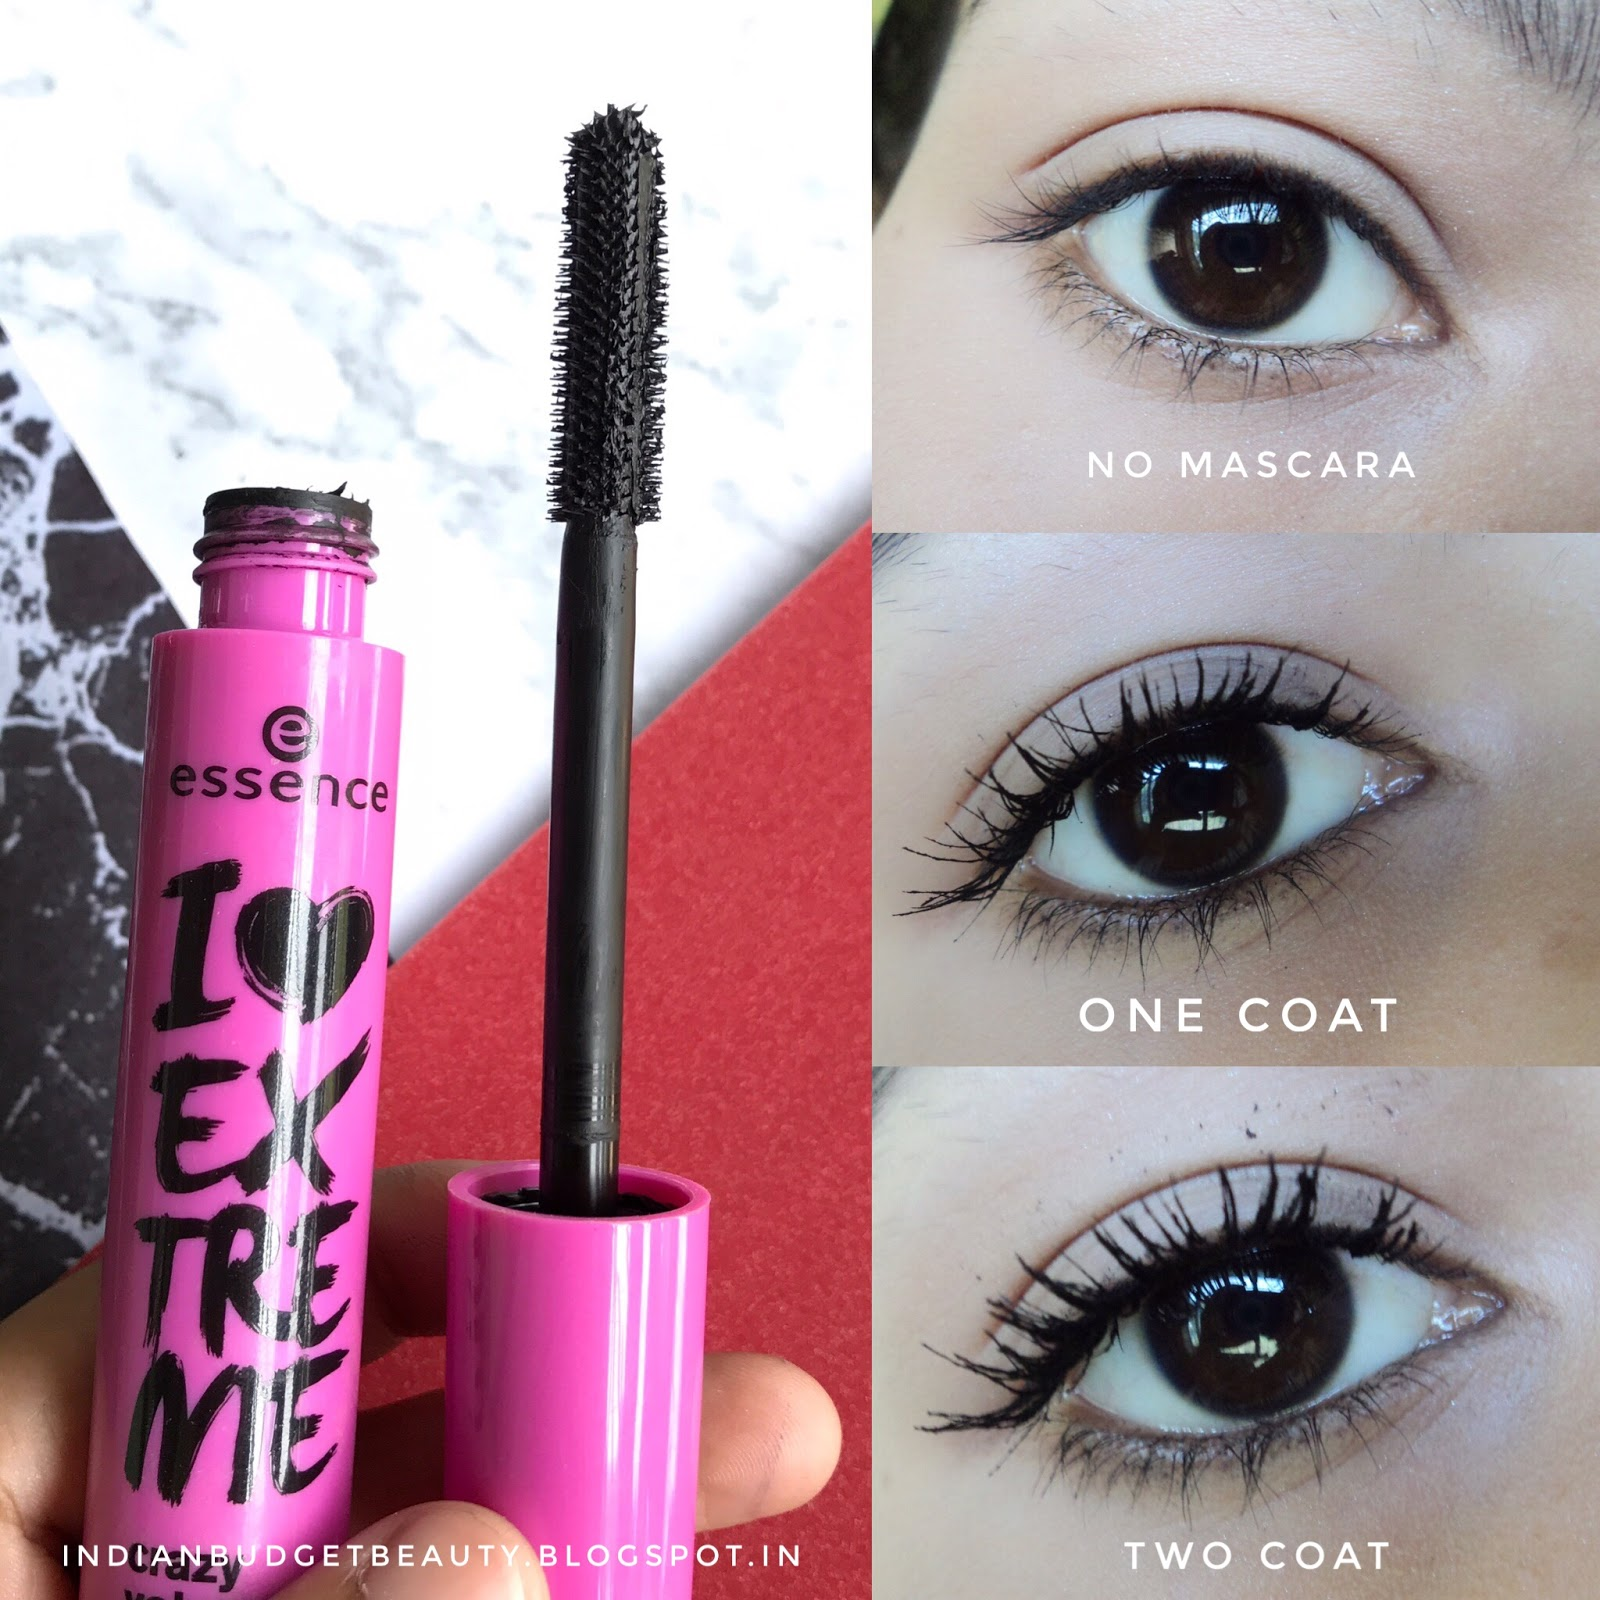 essence i love extreme crazy volume mascara review best mascaras under indian budget. Black Bedroom Furniture Sets. Home Design Ideas